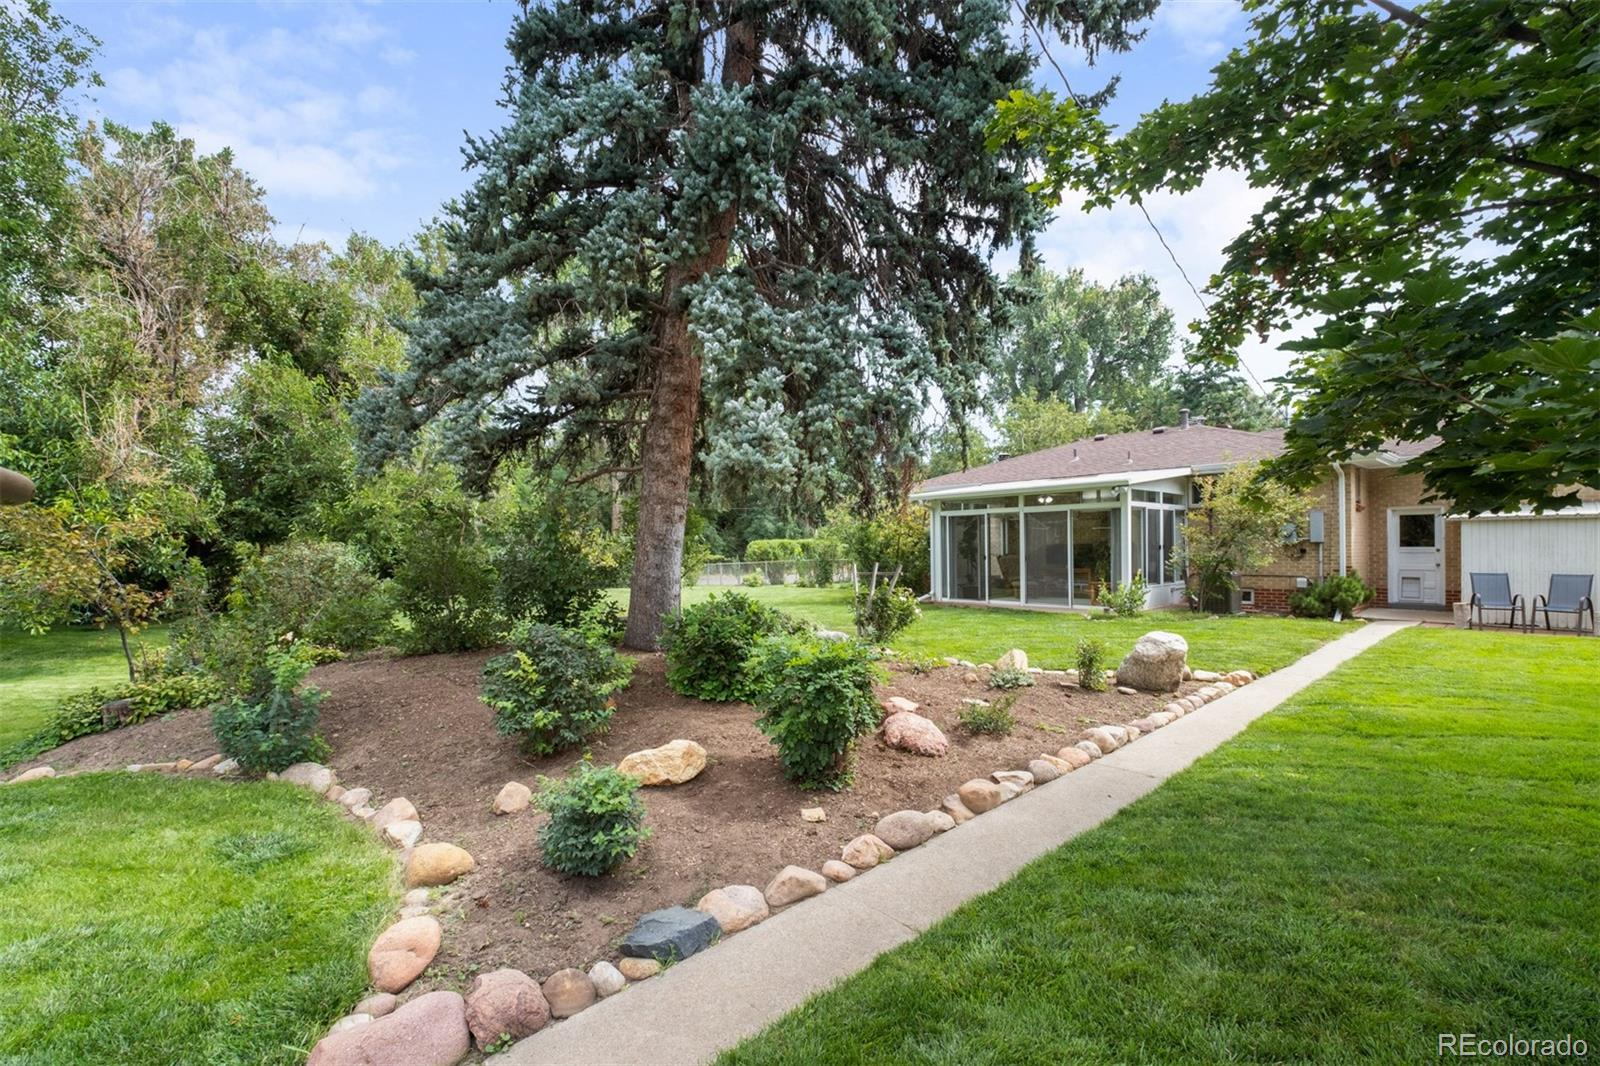 MLS# 3953143 - 30 - 3075 Quay Street, Wheat Ridge, CO 80033